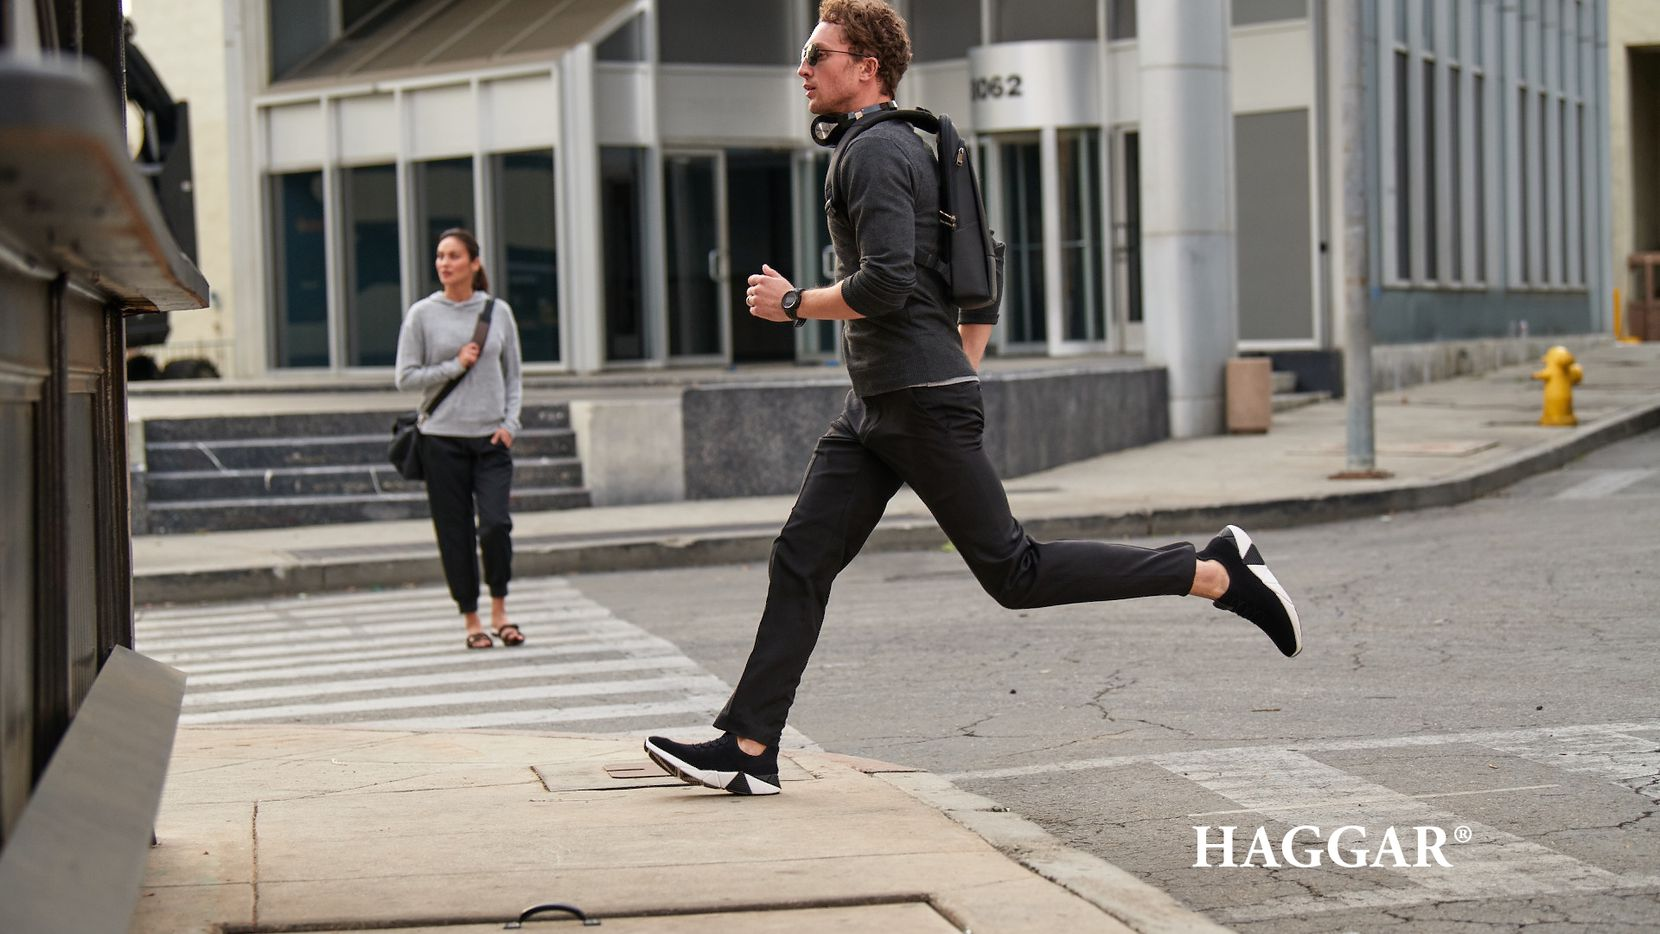 A Haggar ad shows its premium comfort dress pant, which is made with fabric that has fibers from recycled bottles. Since 2009, Haggar's pants have led to the recycling of 150 million disposable plastic water bottles, the company said.